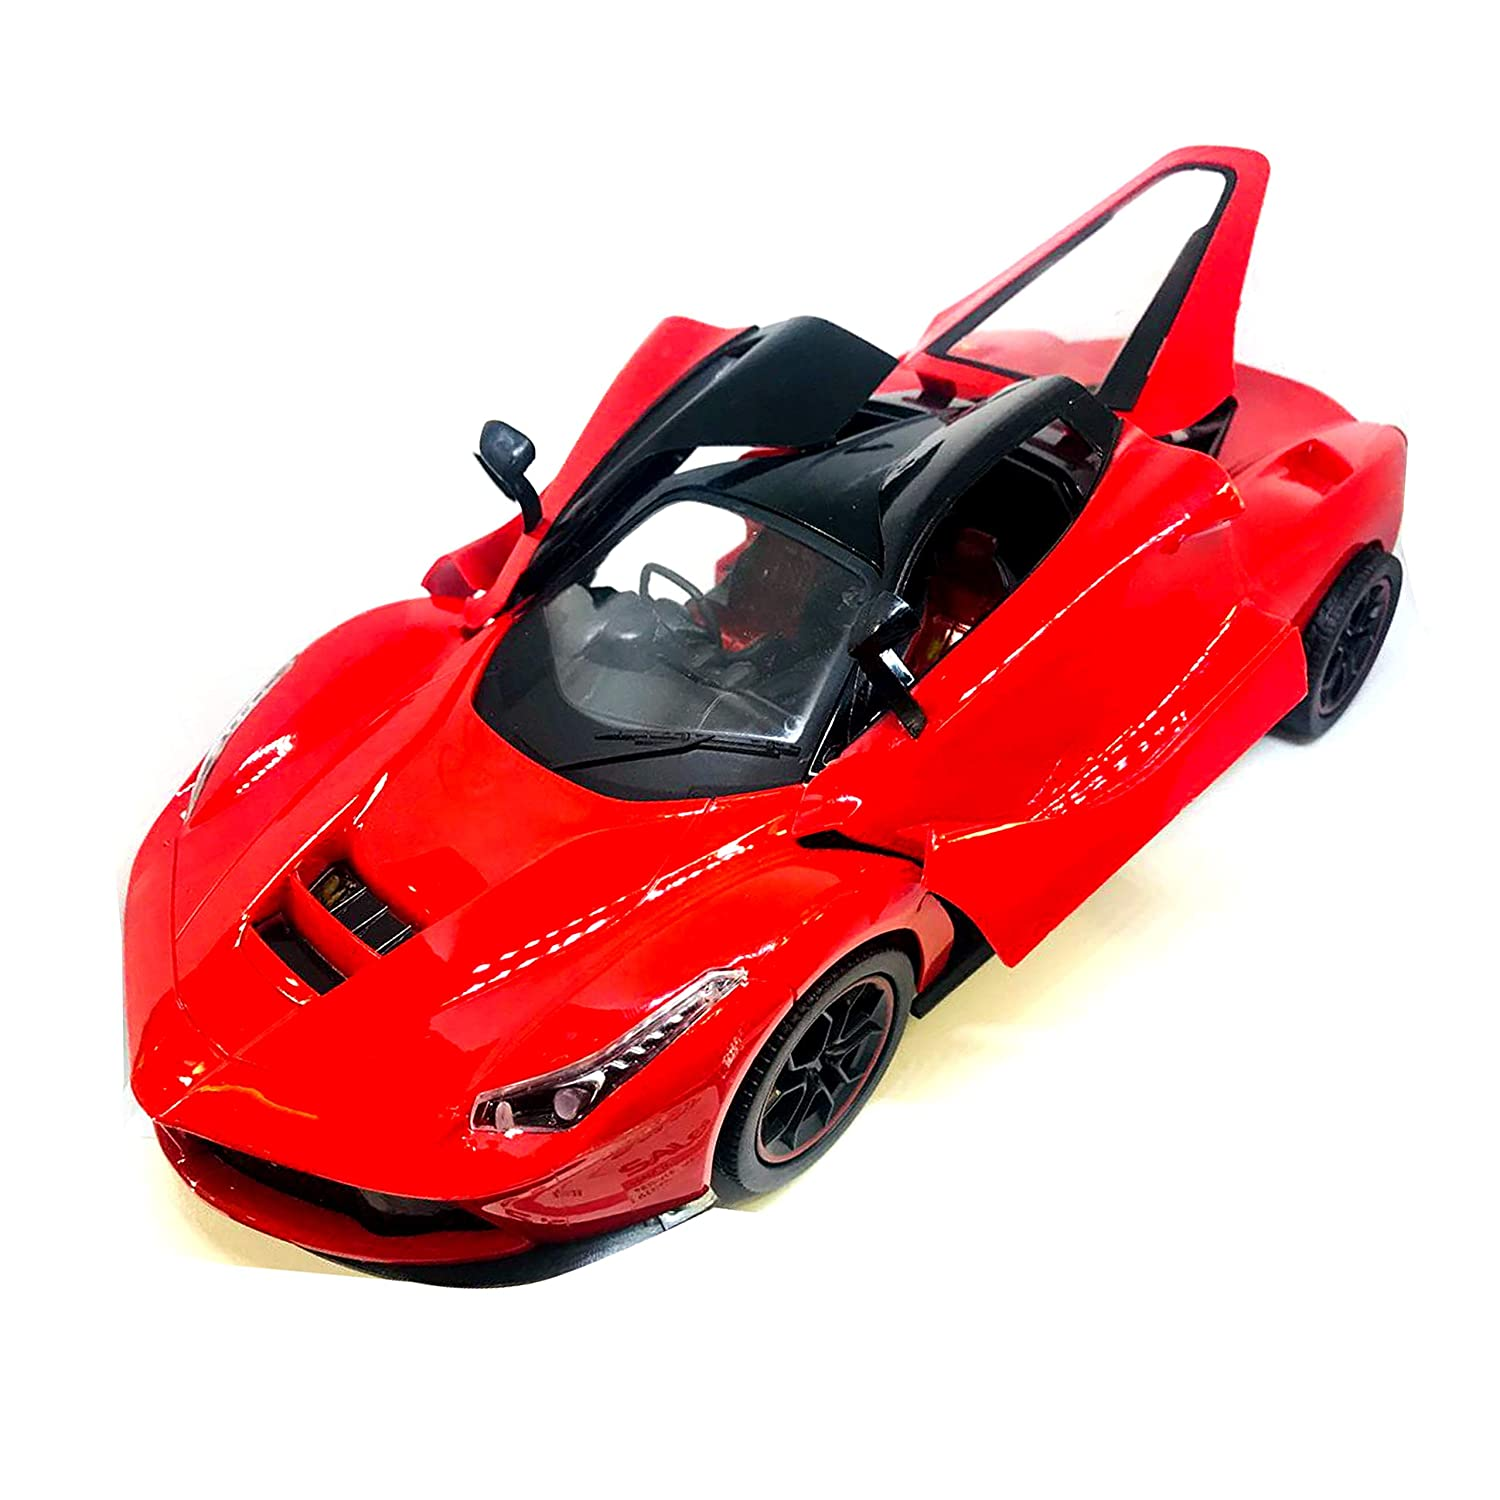 Buy E Toys Xstreet Ferrari Red Color Car Big Car Car Sports Car Ferrai Car Ferrari Big Car Ferrari Car Toys Online At Low Prices In India Amazon In